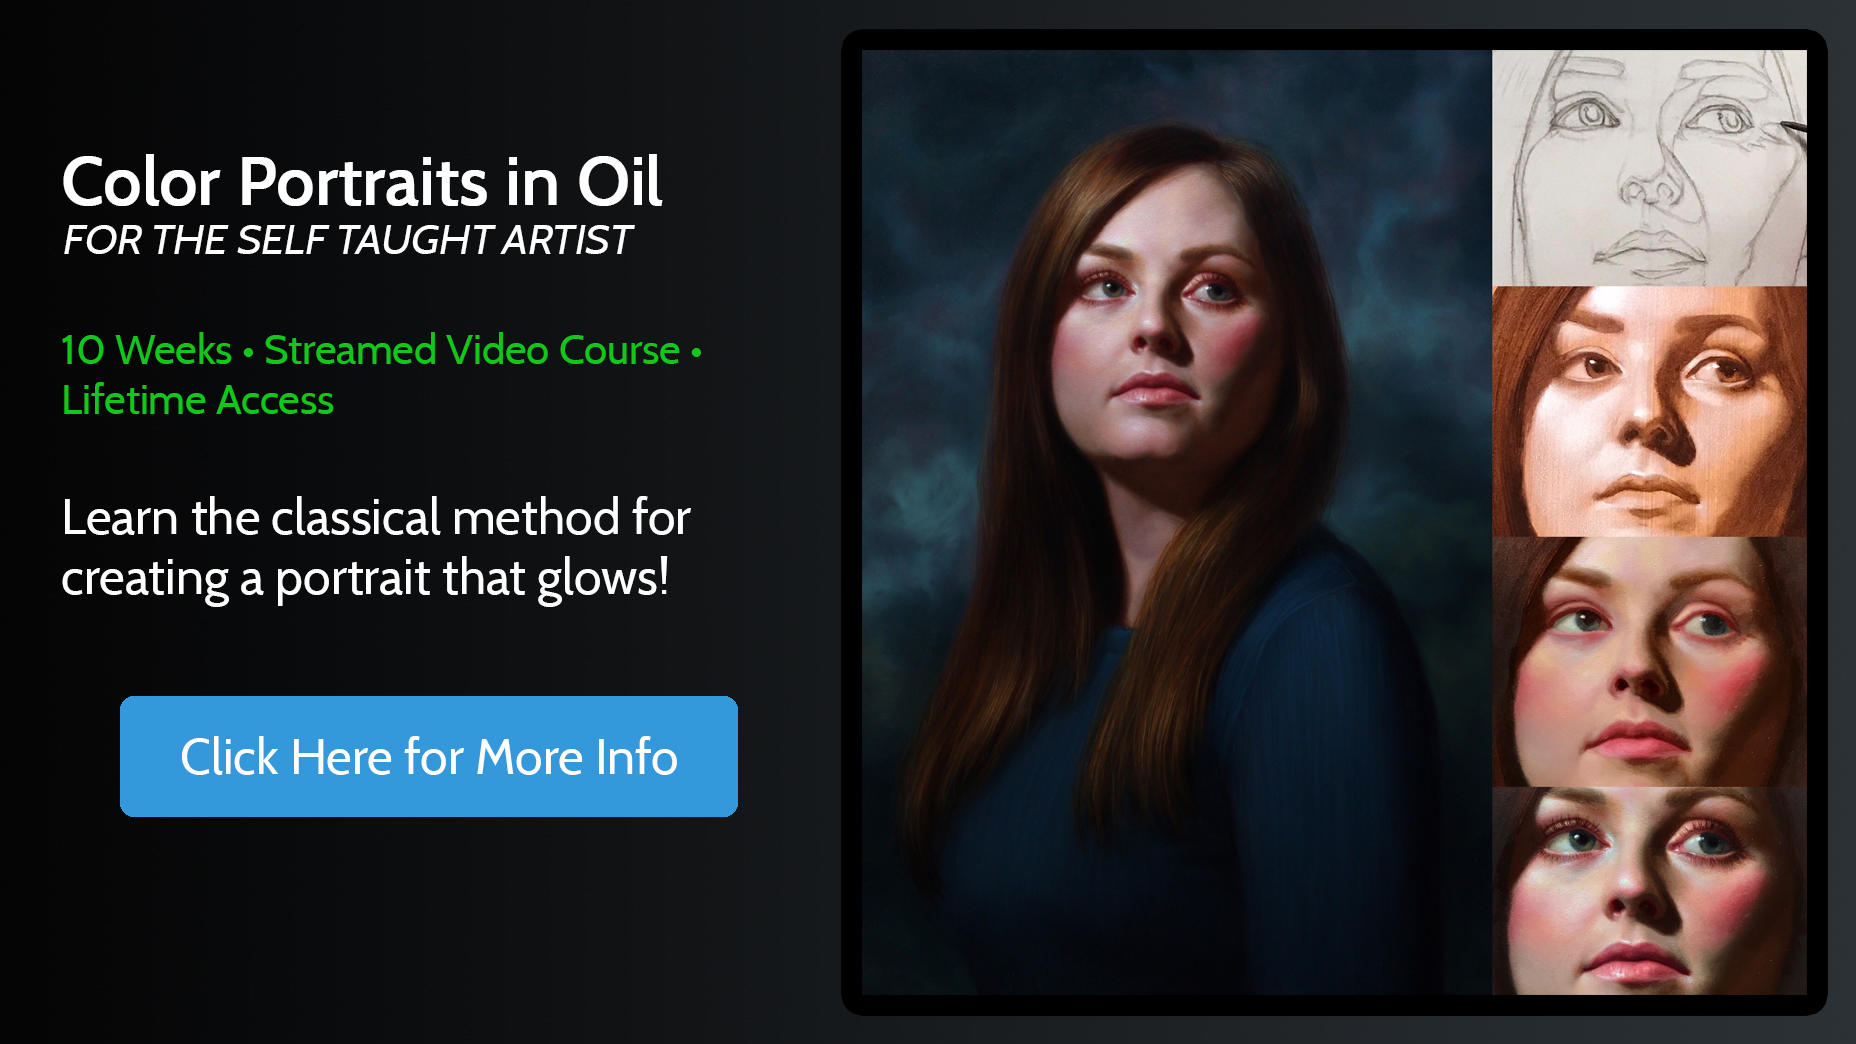 Color Portraits in Oil Online Course